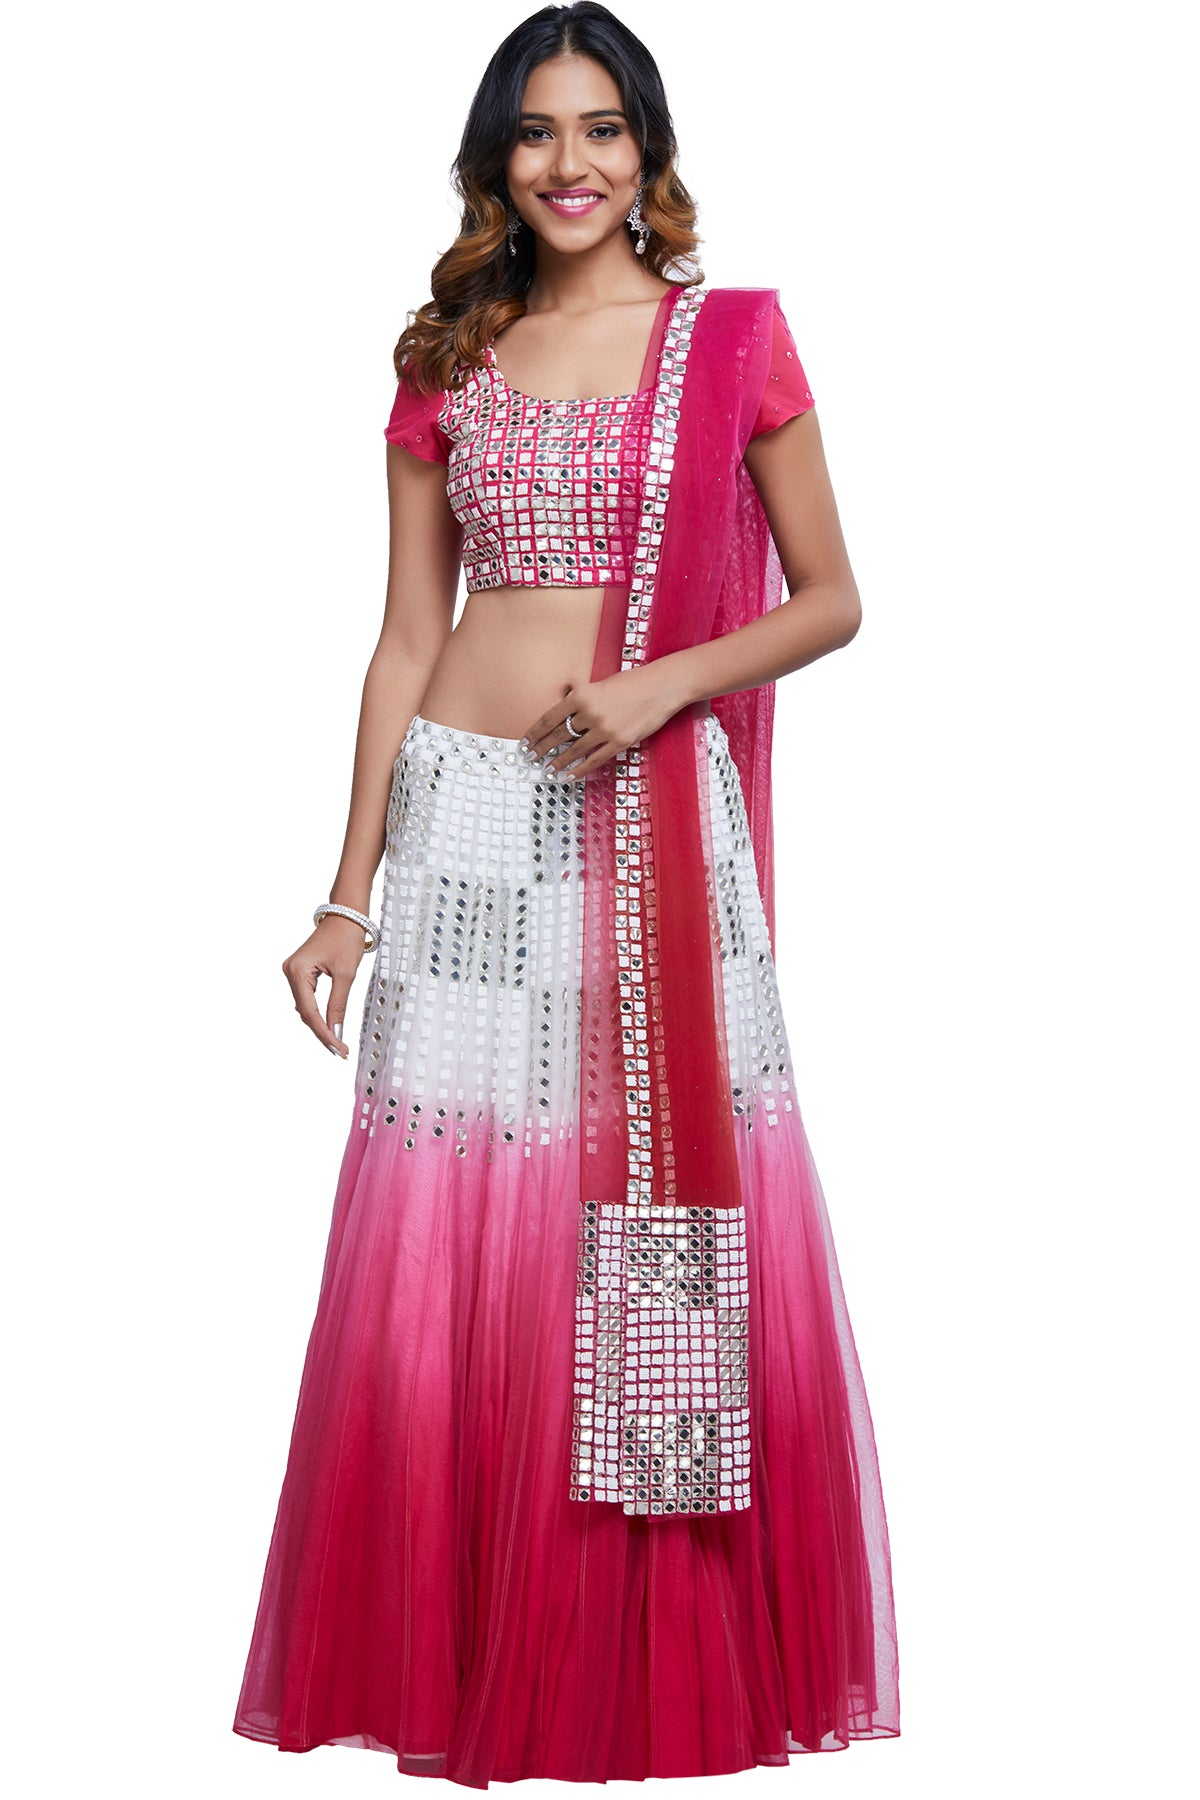 Mirror the magic of Indian rituals in this gushing romance of pink and white. This set is crafted in ombre net with beaded work and a mirror-bordered dupatta to add that extra layer of lust.